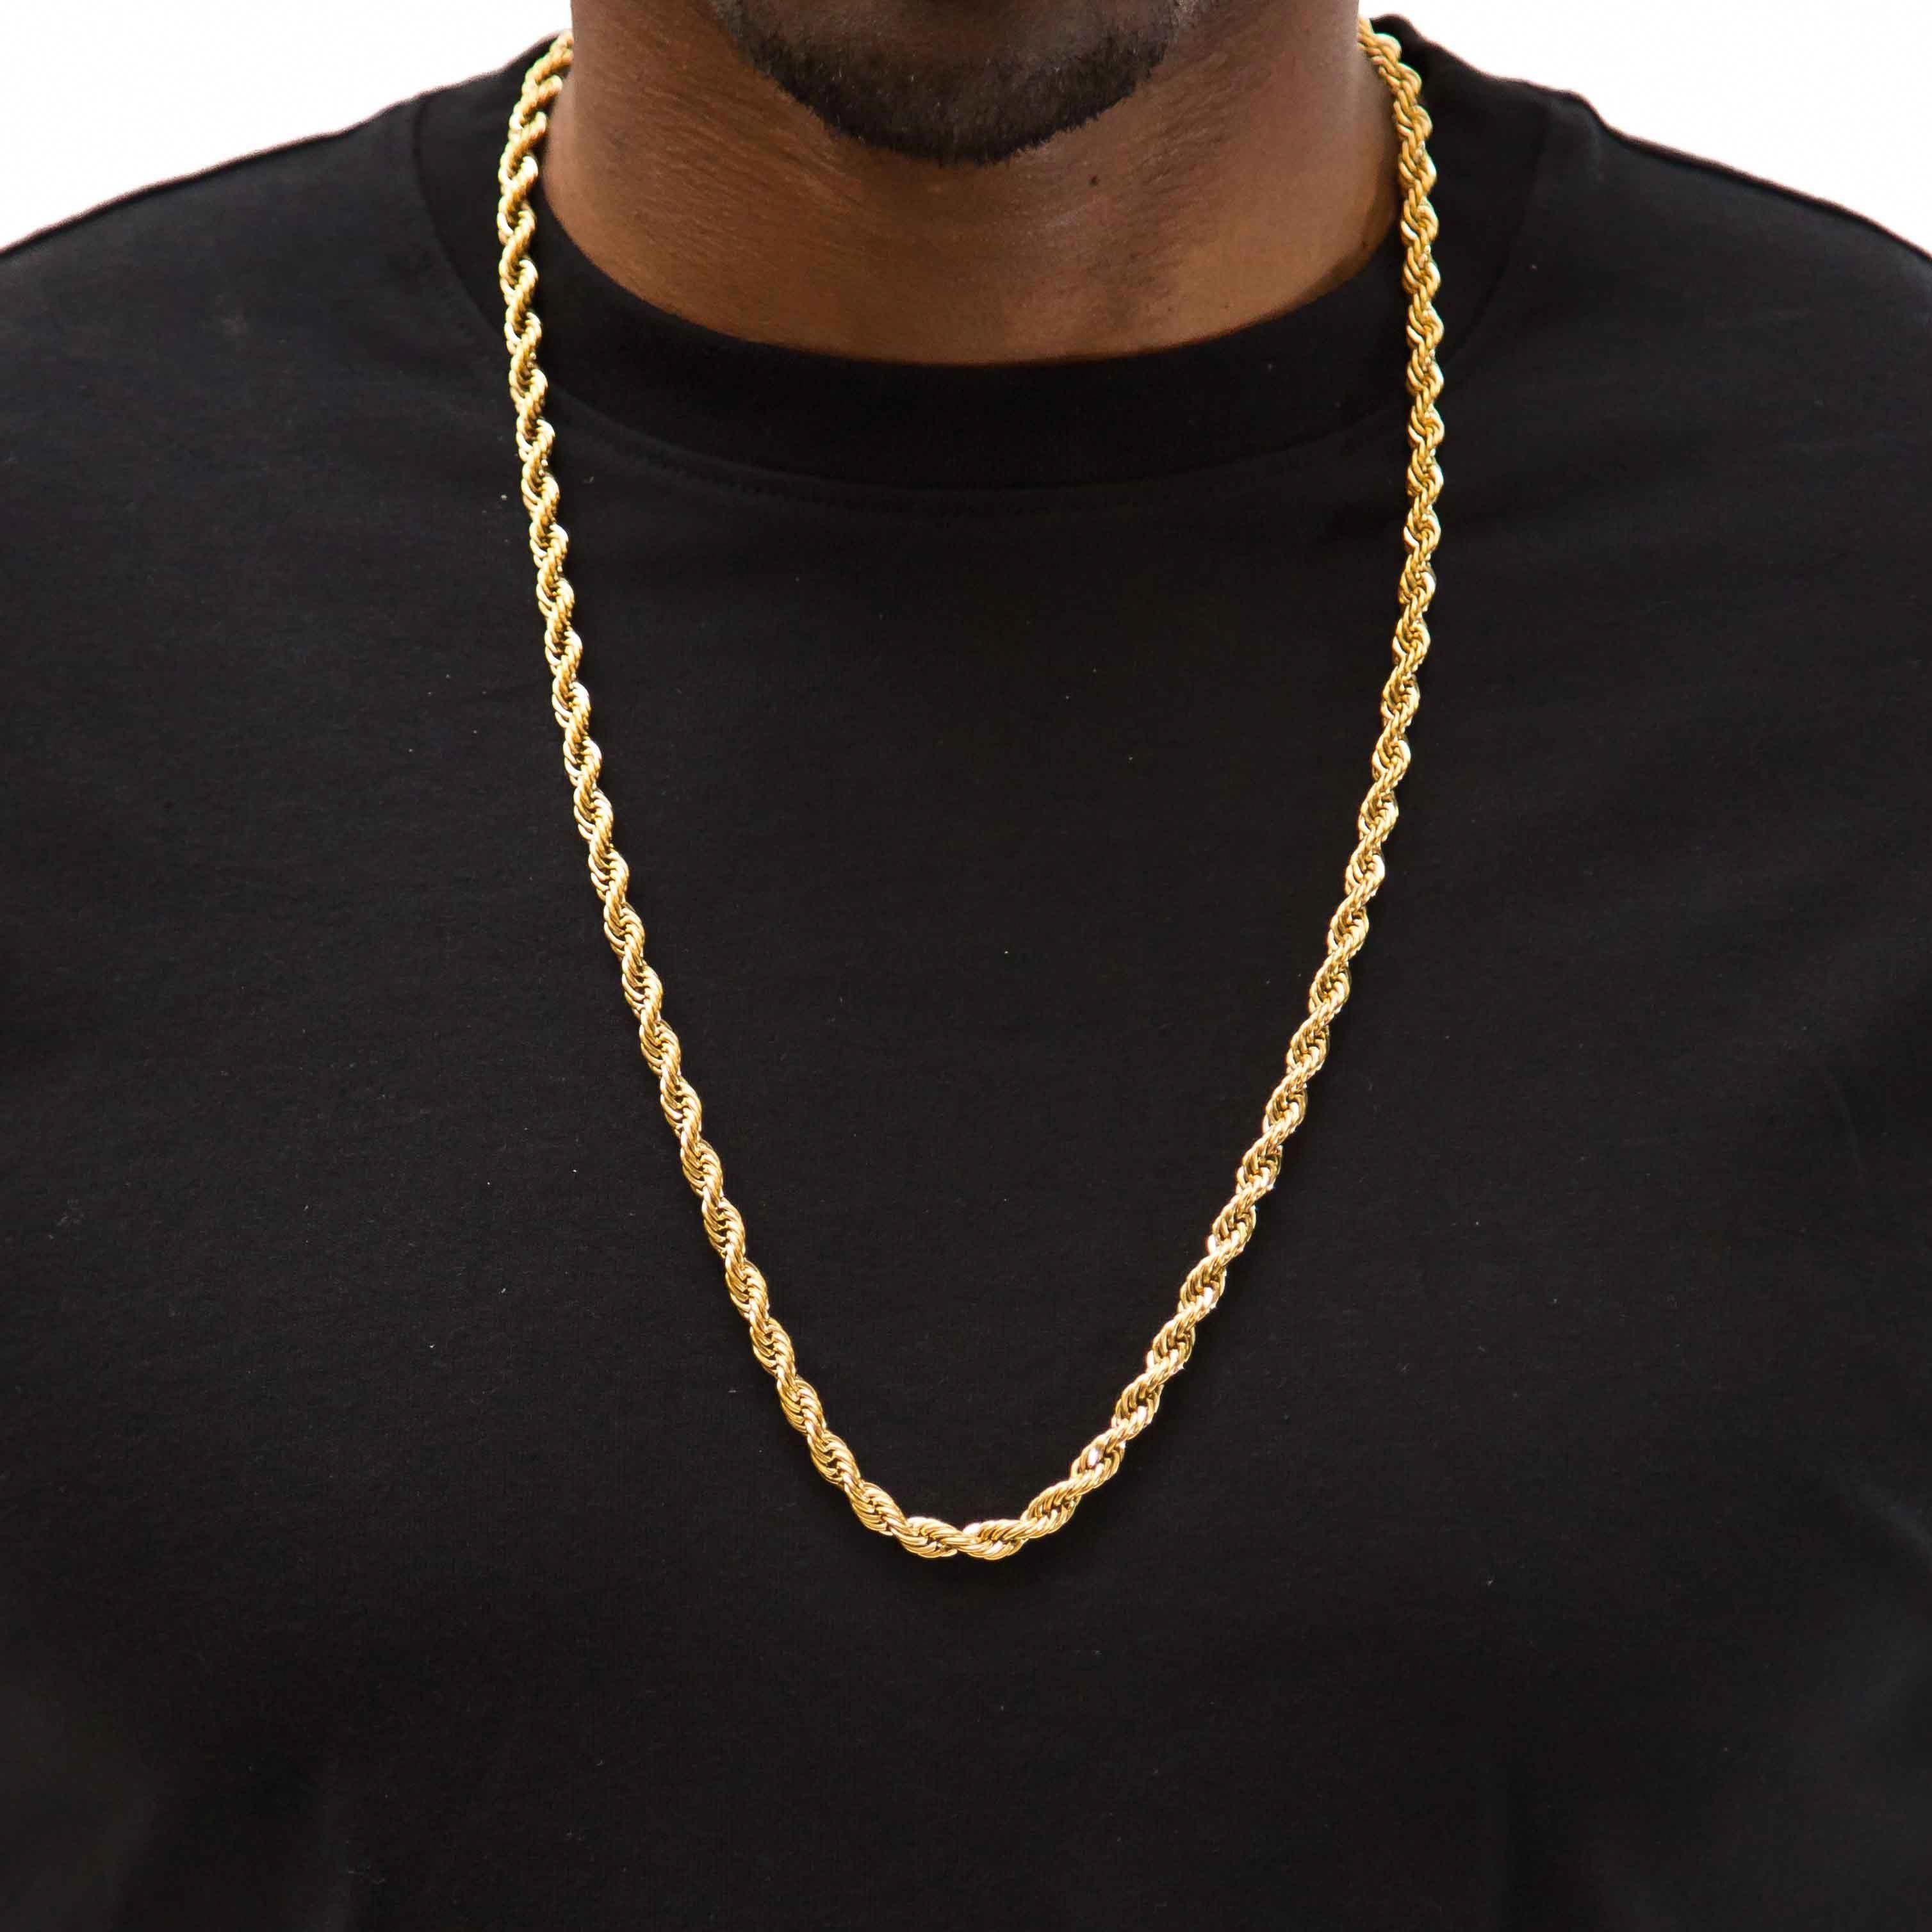 Rope Chain Goldjewelry Goldchainsmen Goldchains Fakegoldchains Mens Chain Necklace Mens Jewelry Necklace Long Chain Necklace